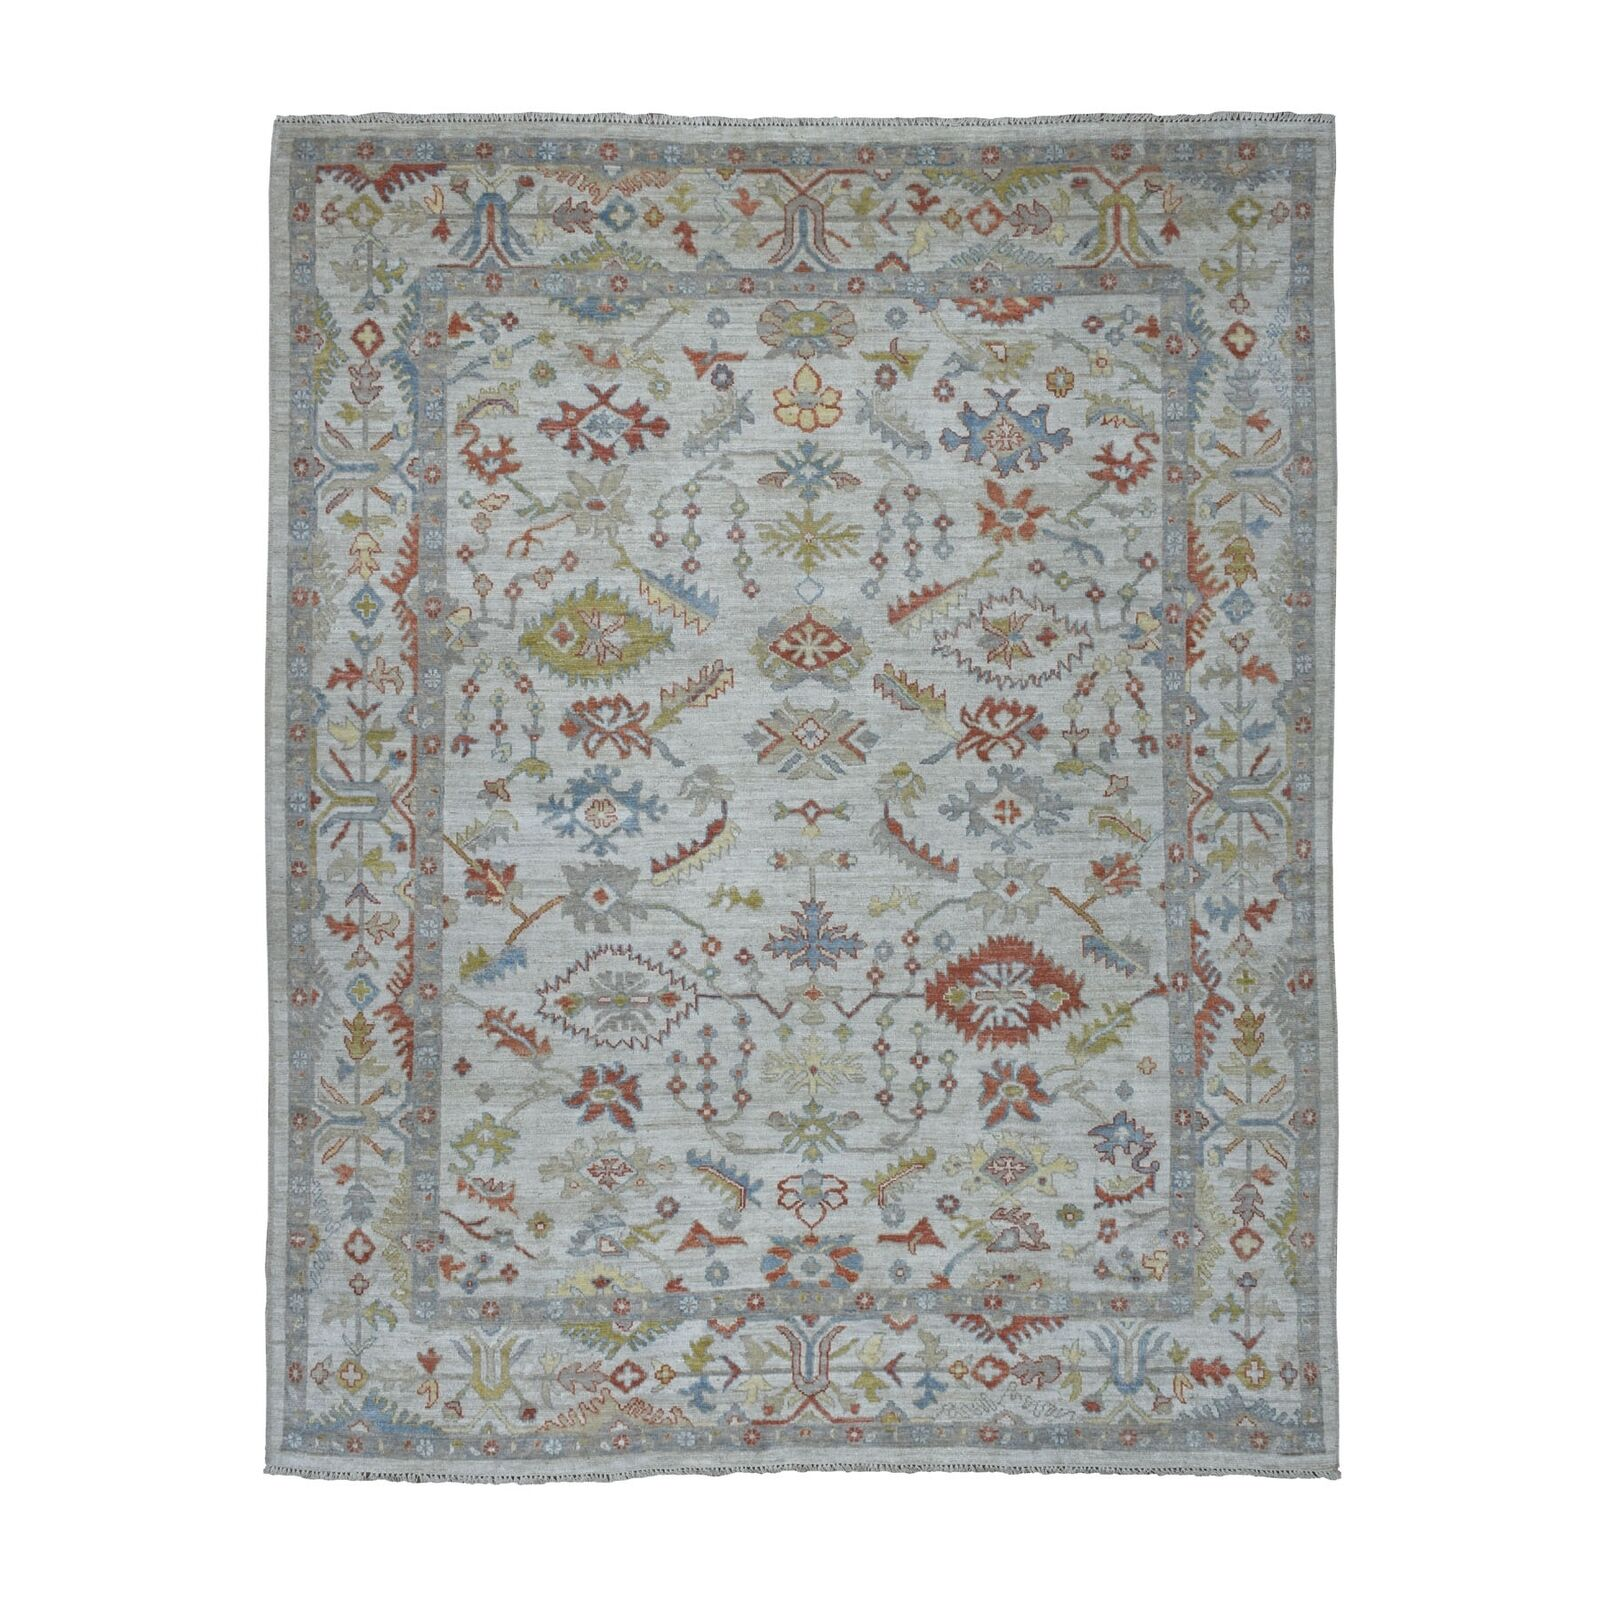 7 10x9 5 Ivory Angora Oushak Pure Wool Hand Knotted Oriental Rug R52652 For Sale